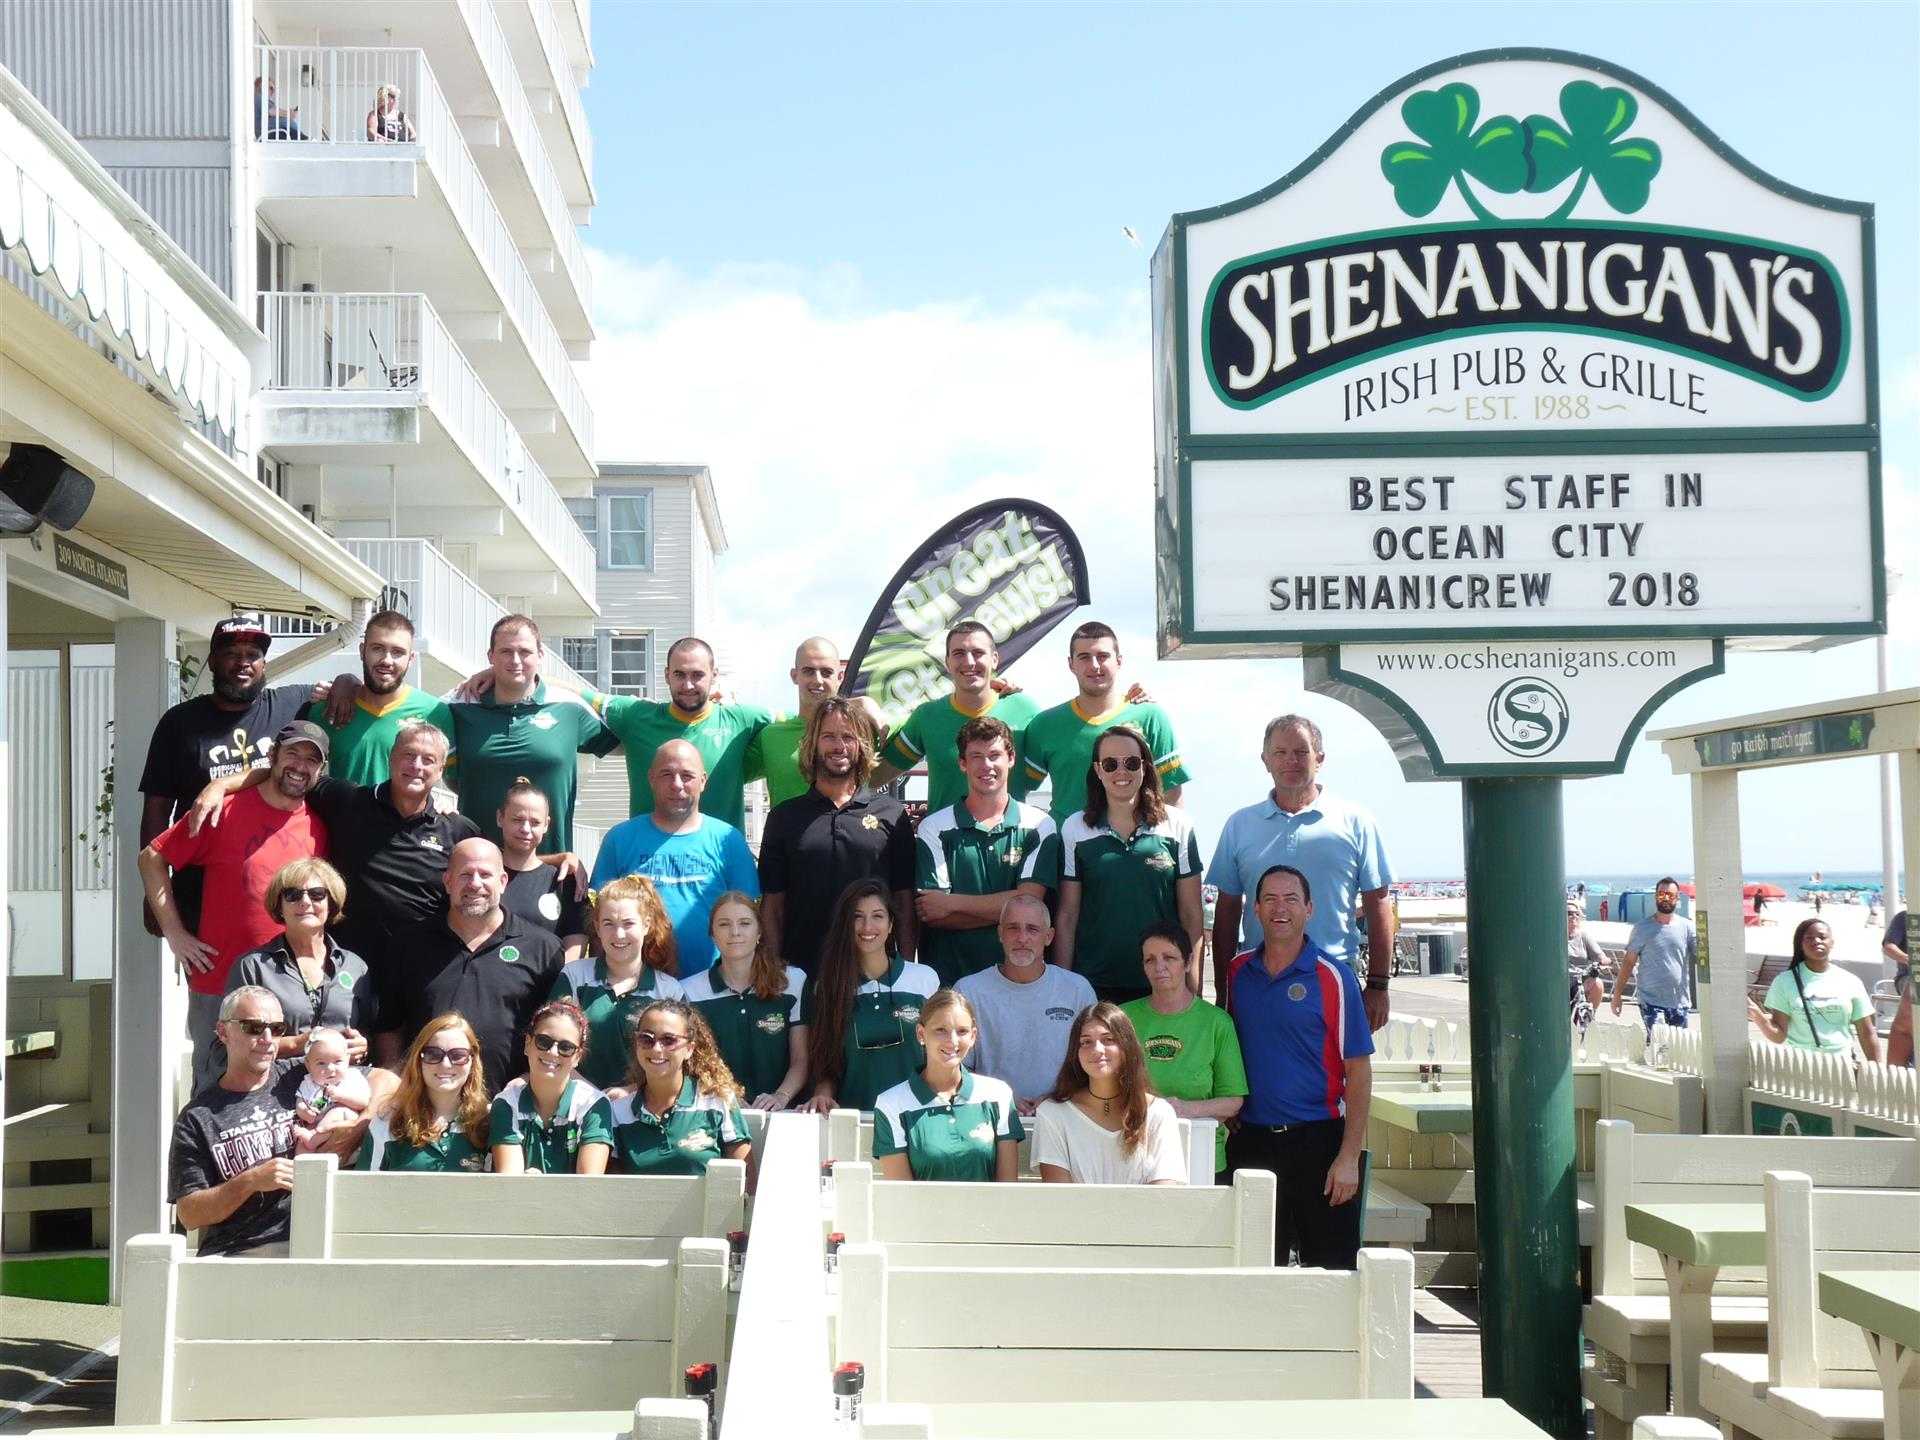 Photo of the Shenanigan's staff outside by the boardwalk by the sign all smiling nice.